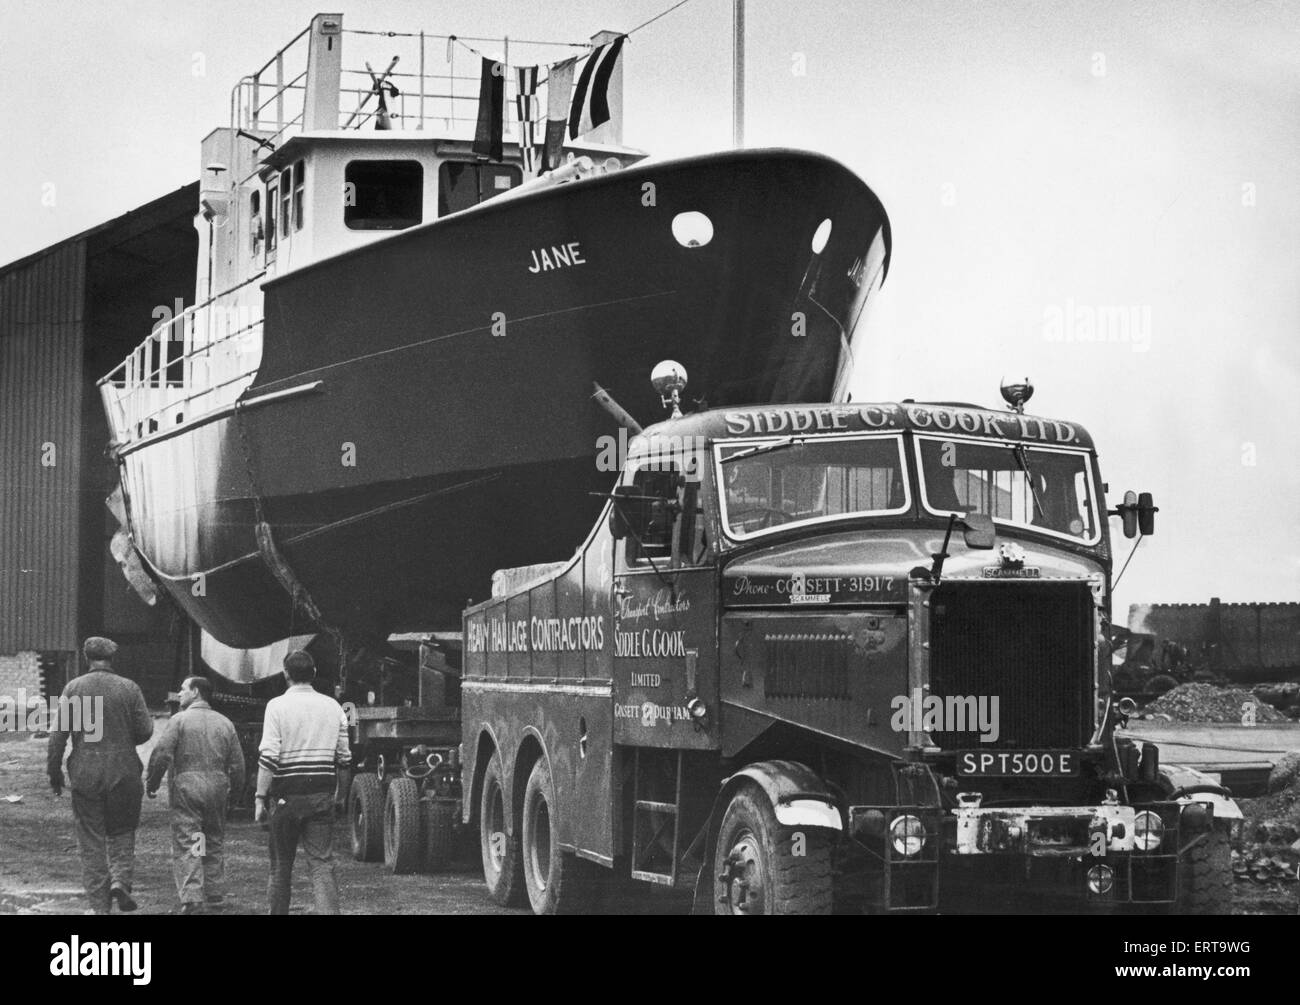 The Jane built by Tees Marine seen here at Normanby Wharf waiting to be lowered into the water. The Jane has been - Stock Image